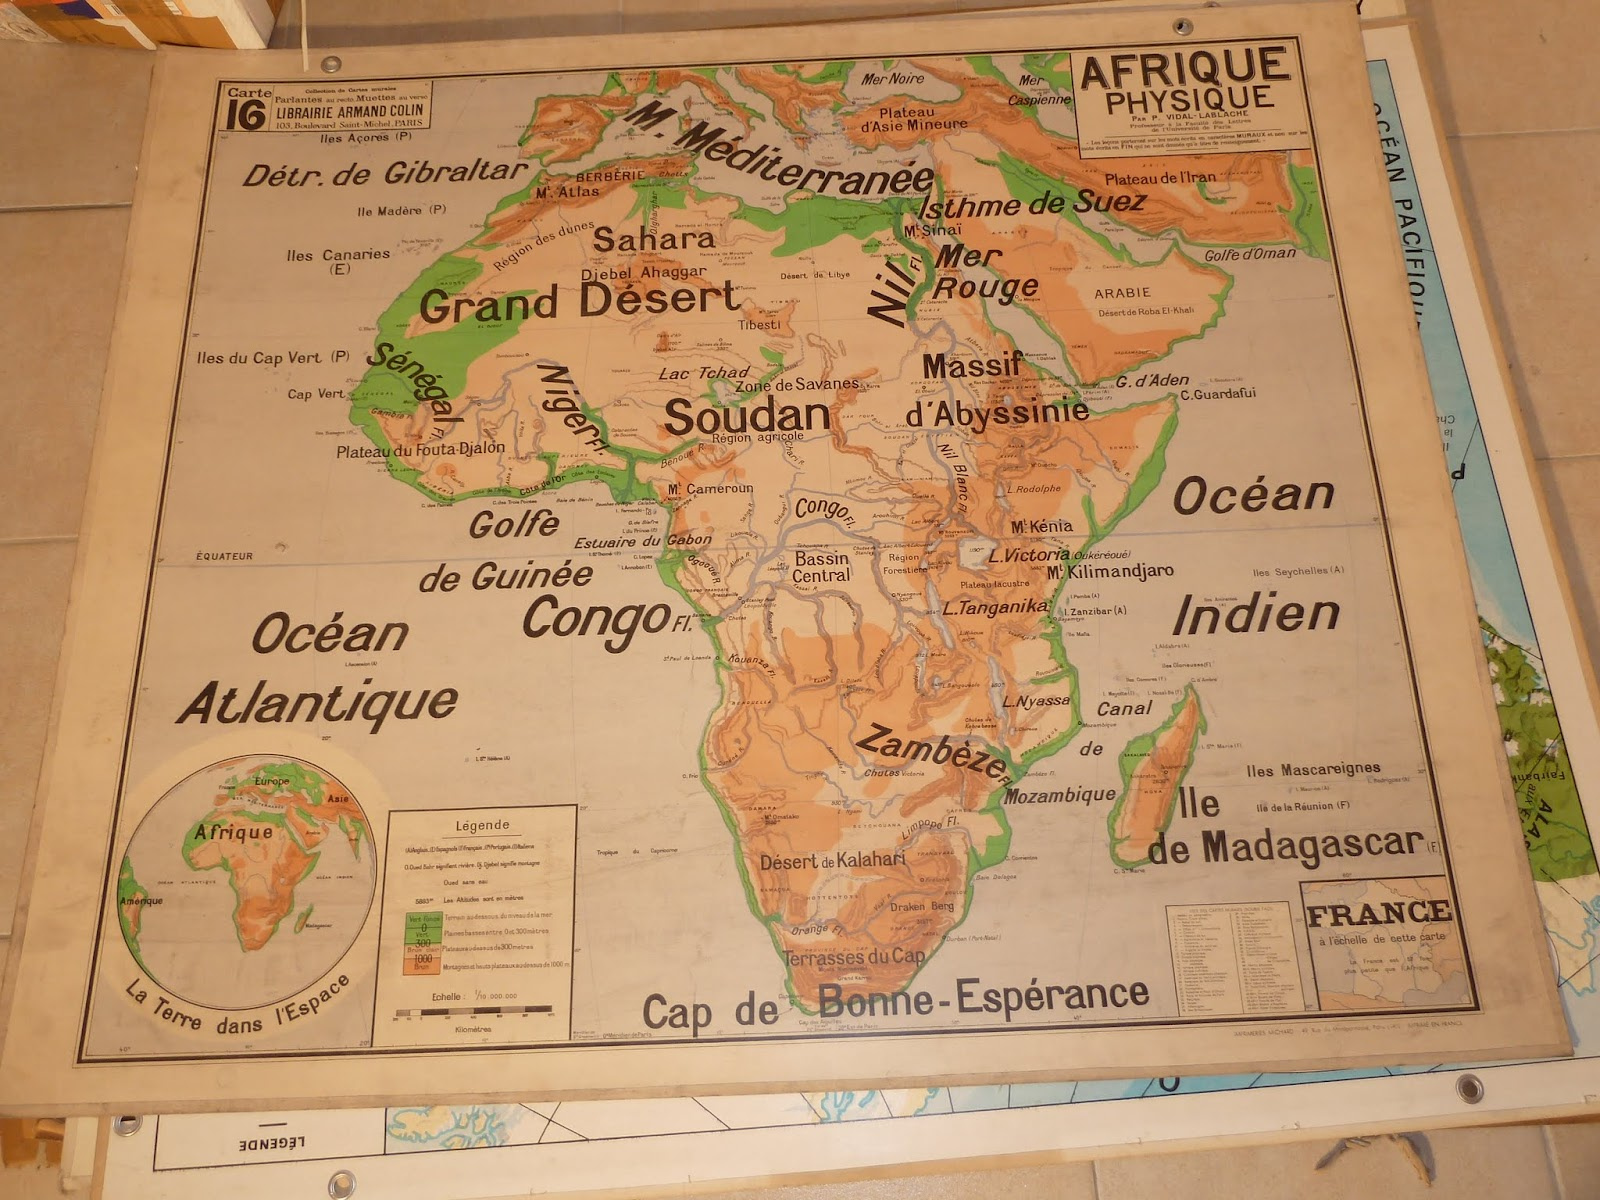 Africa map french 4k pictures 4k pictures full hq wallpaper map of south africa geographical map of south africa france afrique equatoriale francaise aef french equatorial africa afrique equatoriale francaise aef gumiabroncs Choice Image